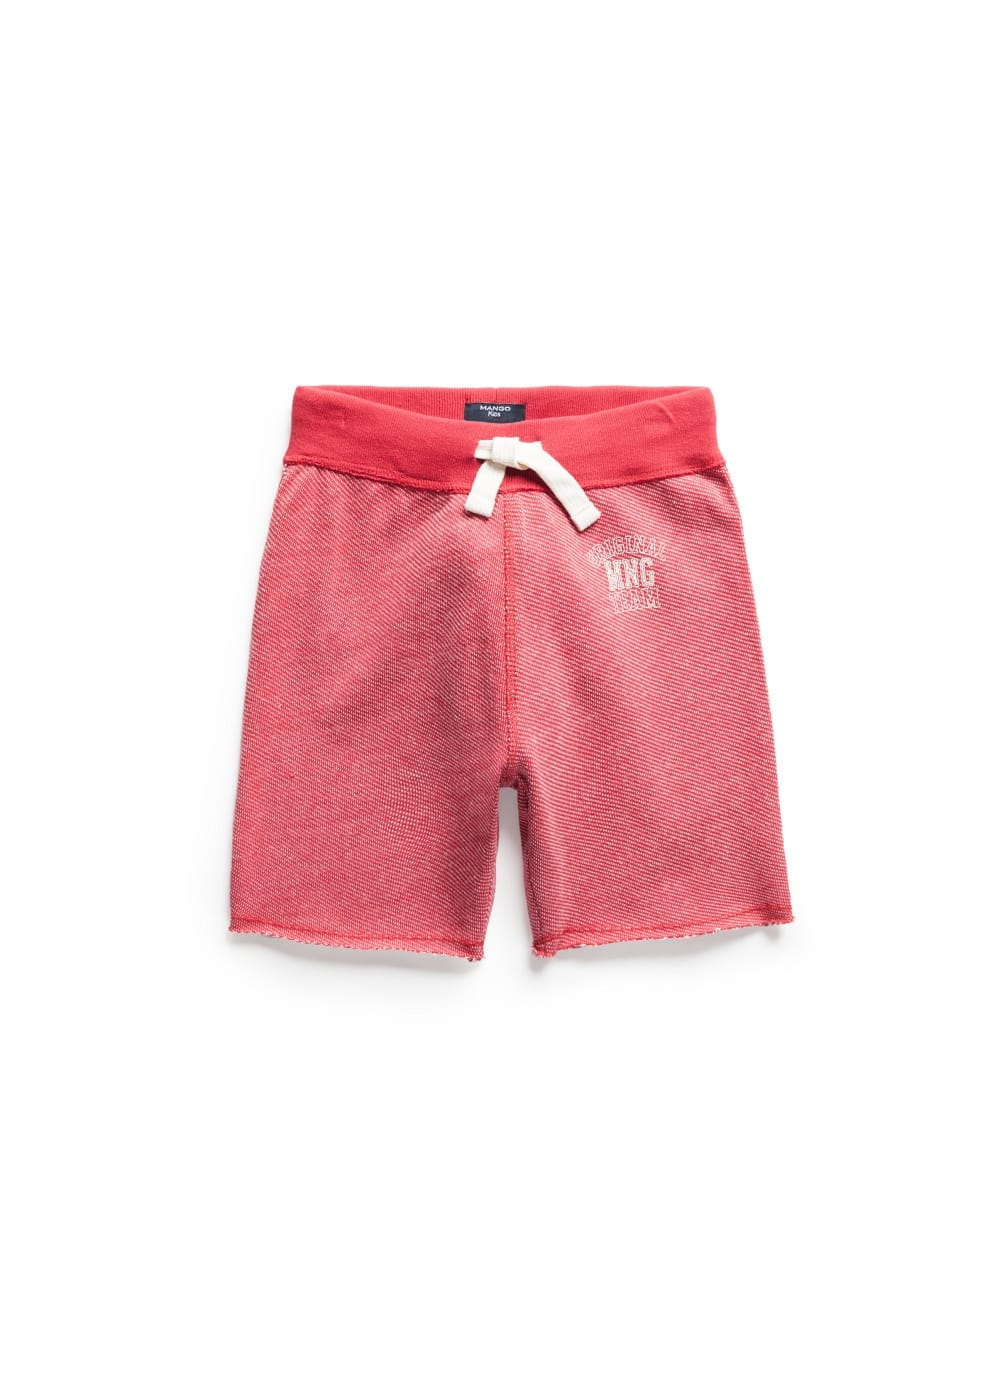 MNG Team jogging bermuda shorts